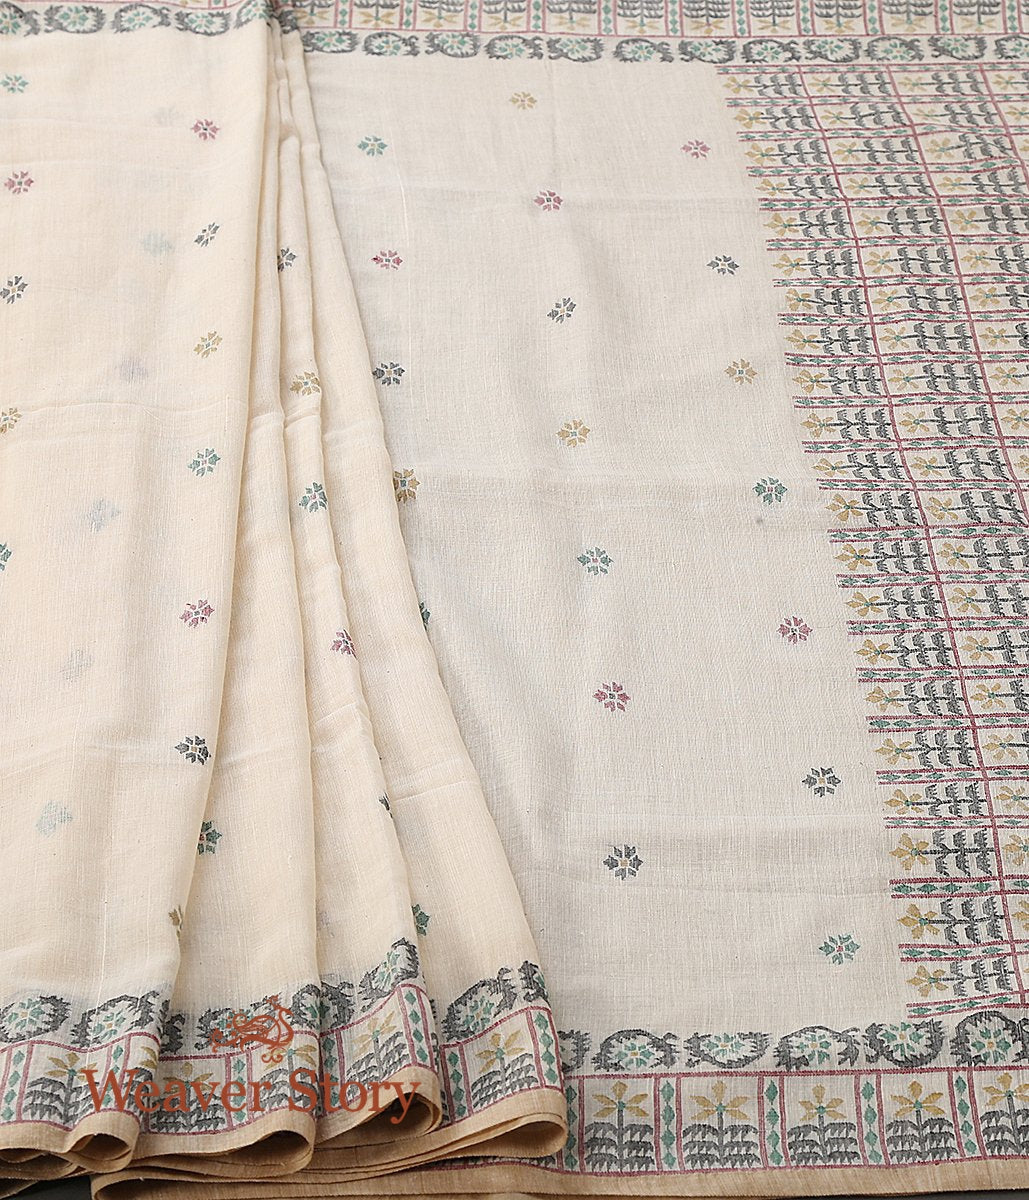 Beige Hand Spun and Hand Woven Cotton Jamdani Saree with Mustard and Black Thread Weave